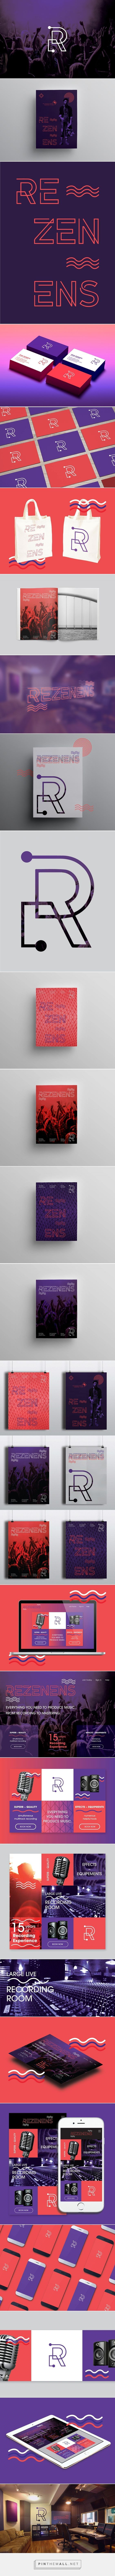 REZENENS Branding on Behance | Fivestar Branding – Design and Branding Agency…